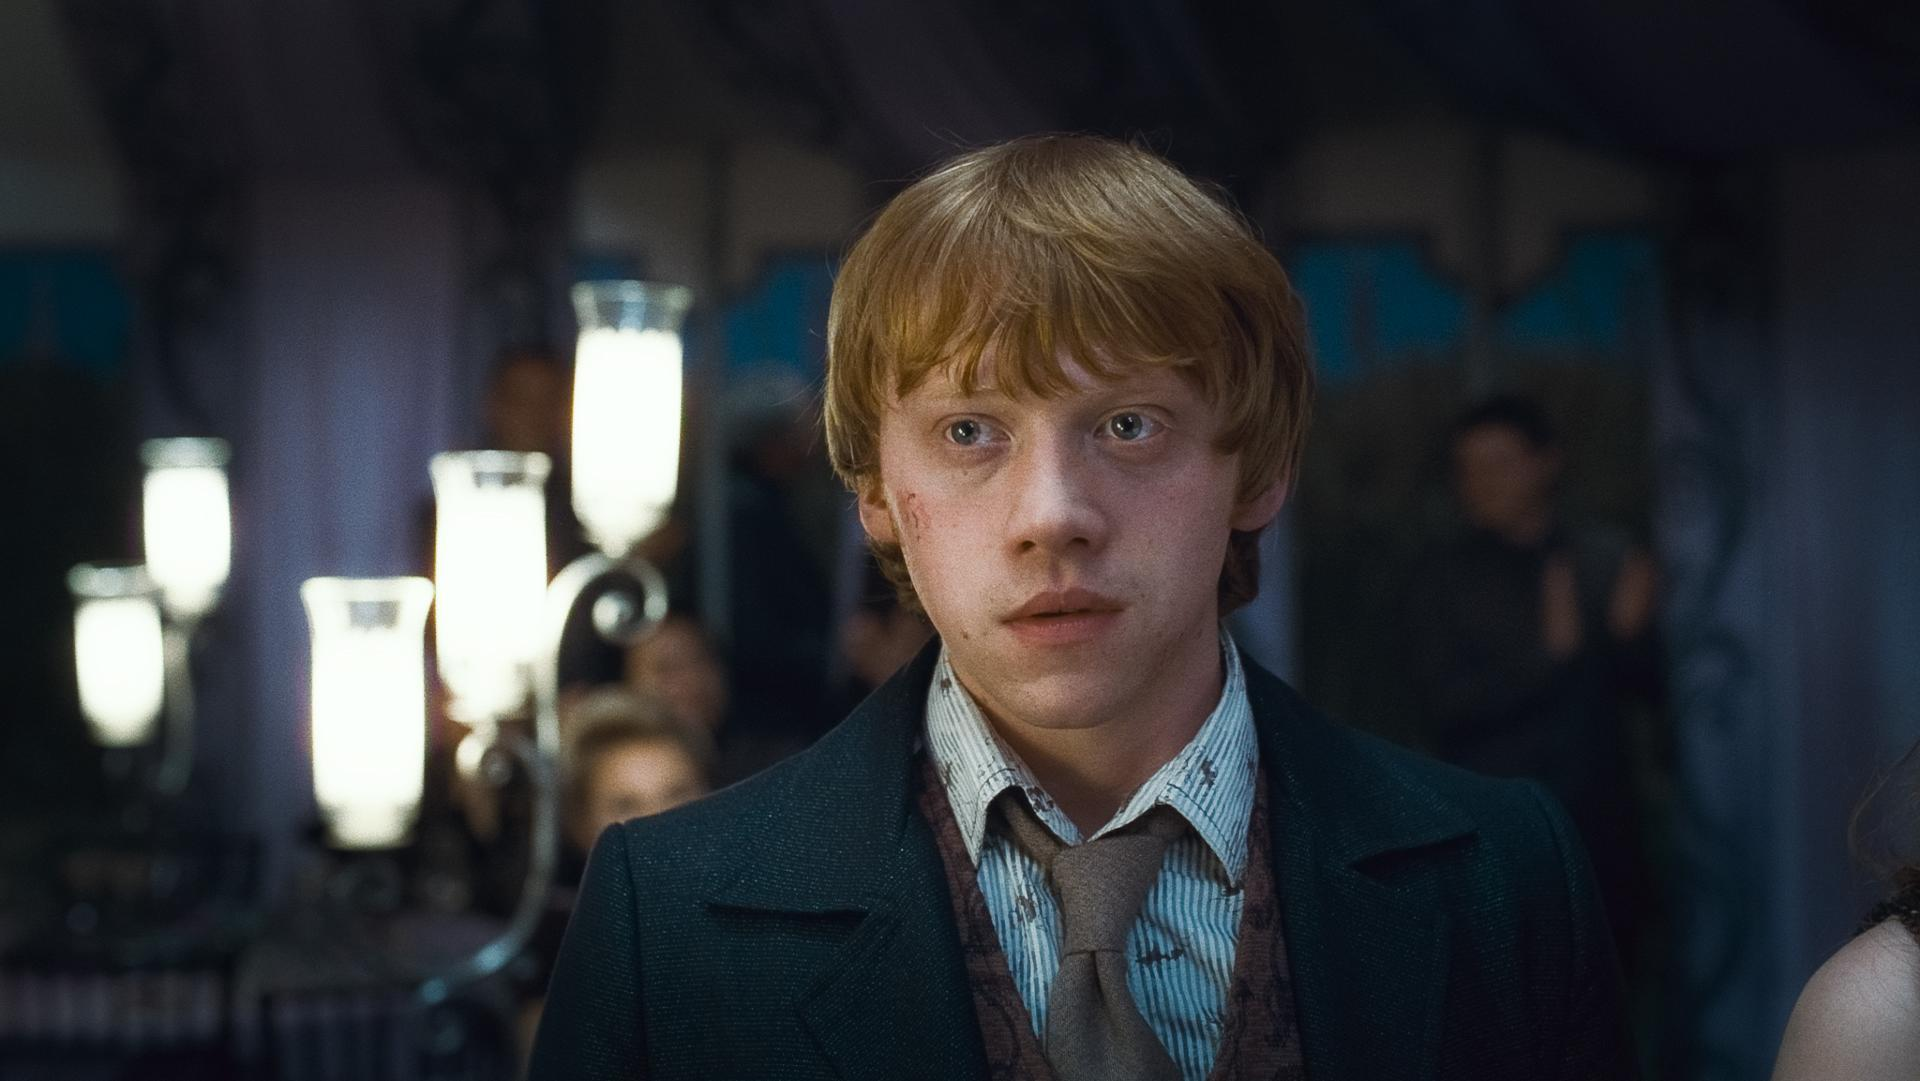 20 Ron Weasley Quotes That Prove He Was Way More Than A Sidekick